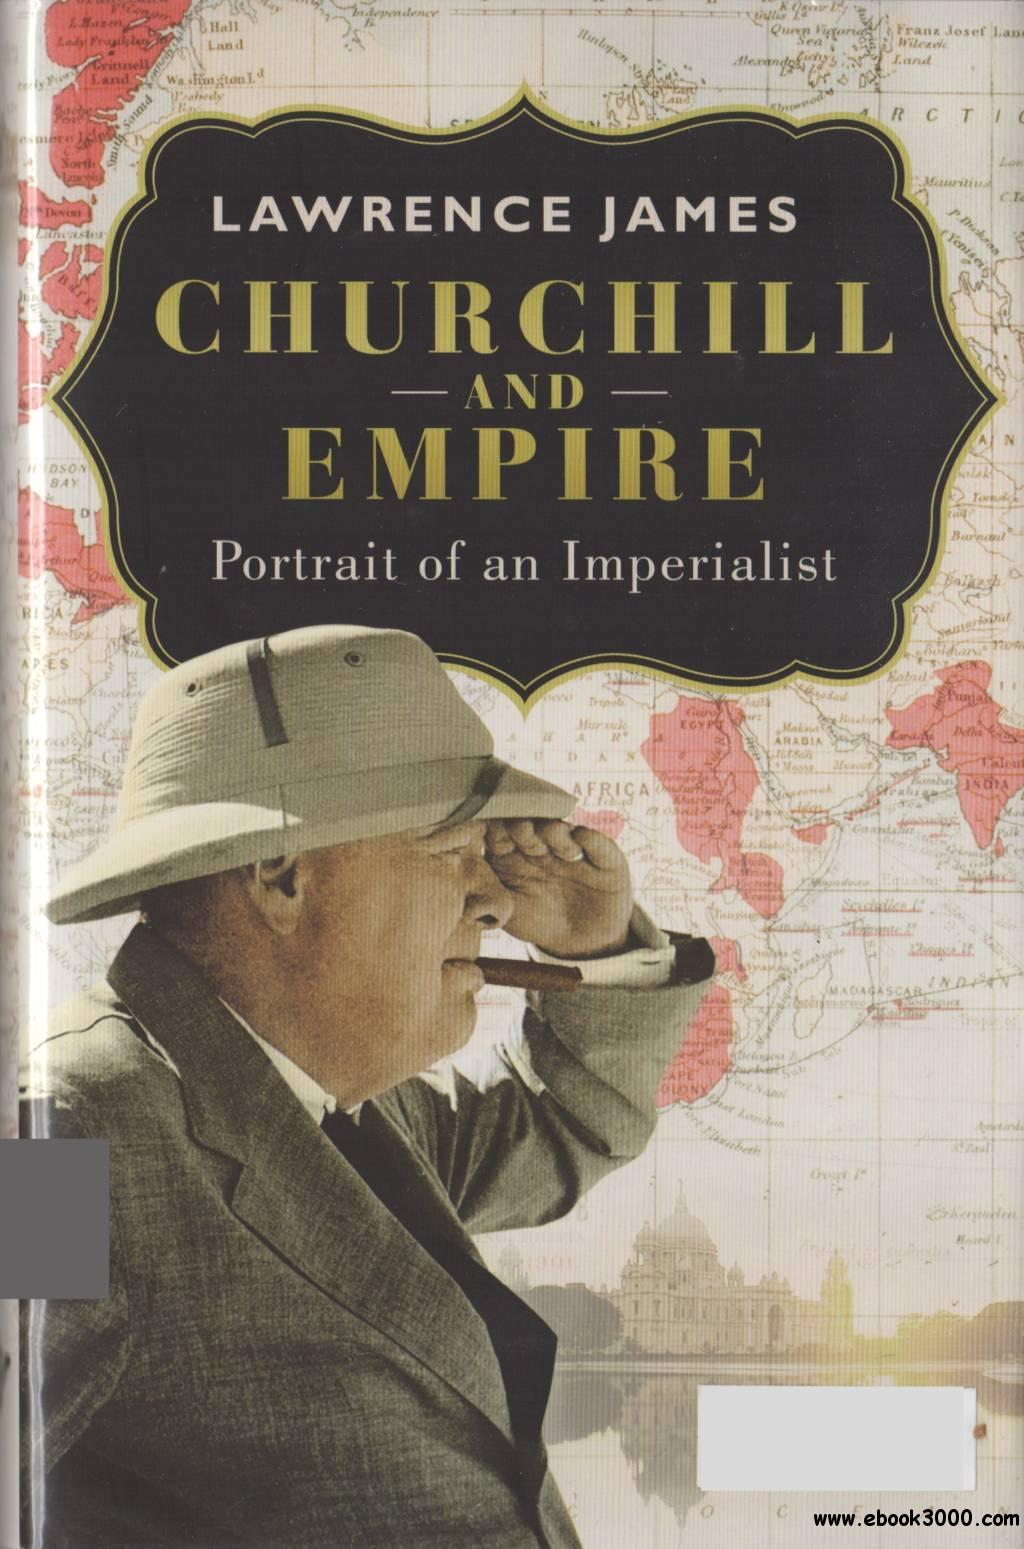 Churchill and Empire - Portrait of an Imperialist free download